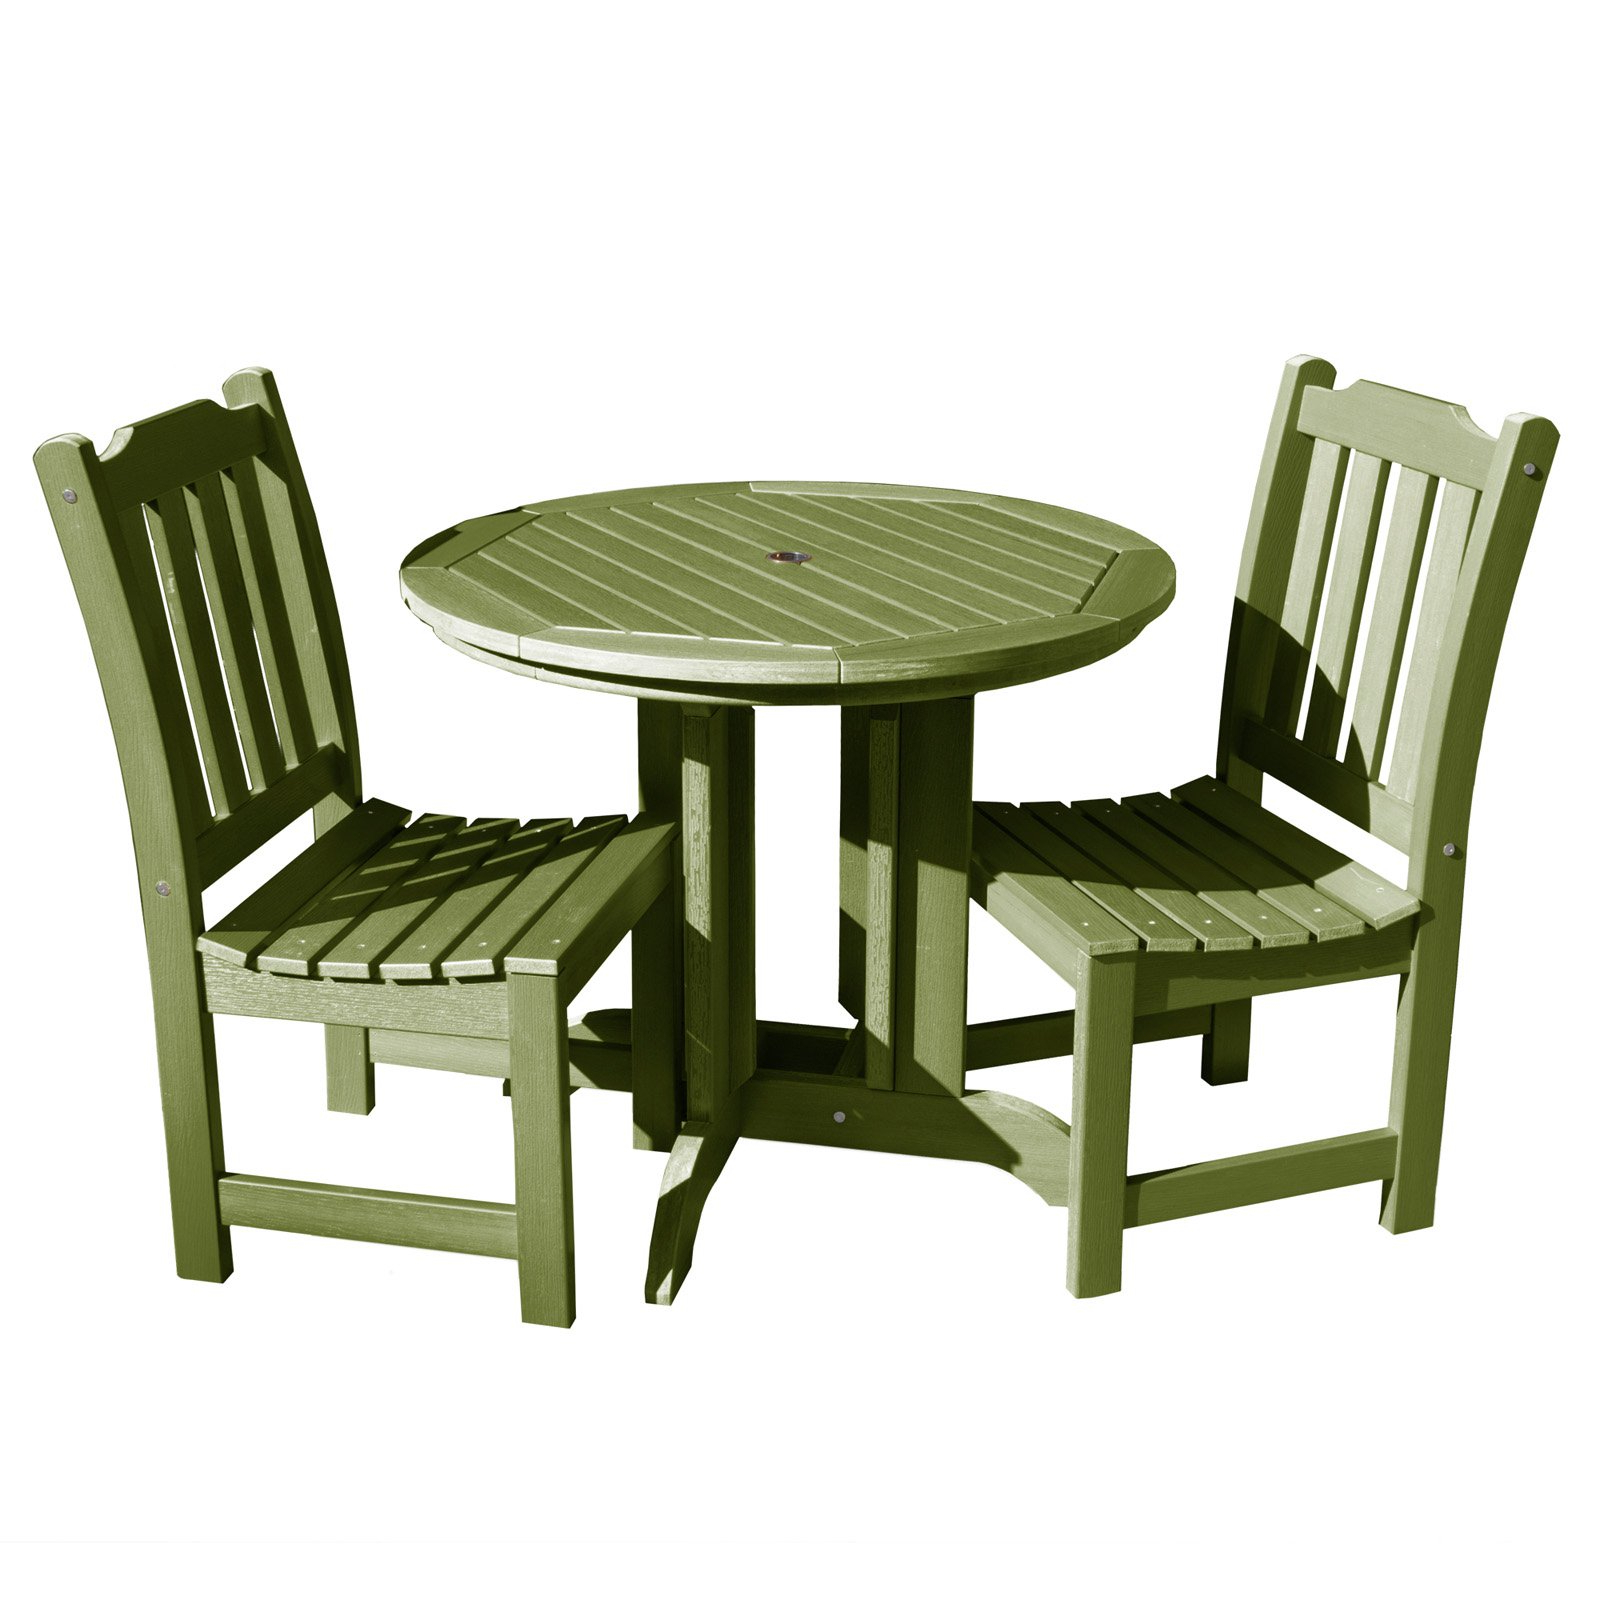 Outdoor Highwood Lehigh Recycled Plastic 3 Piece Round Patio Bistro Inside Famous Saintcroix 3 Piece Dining Sets (View 12 of 20)